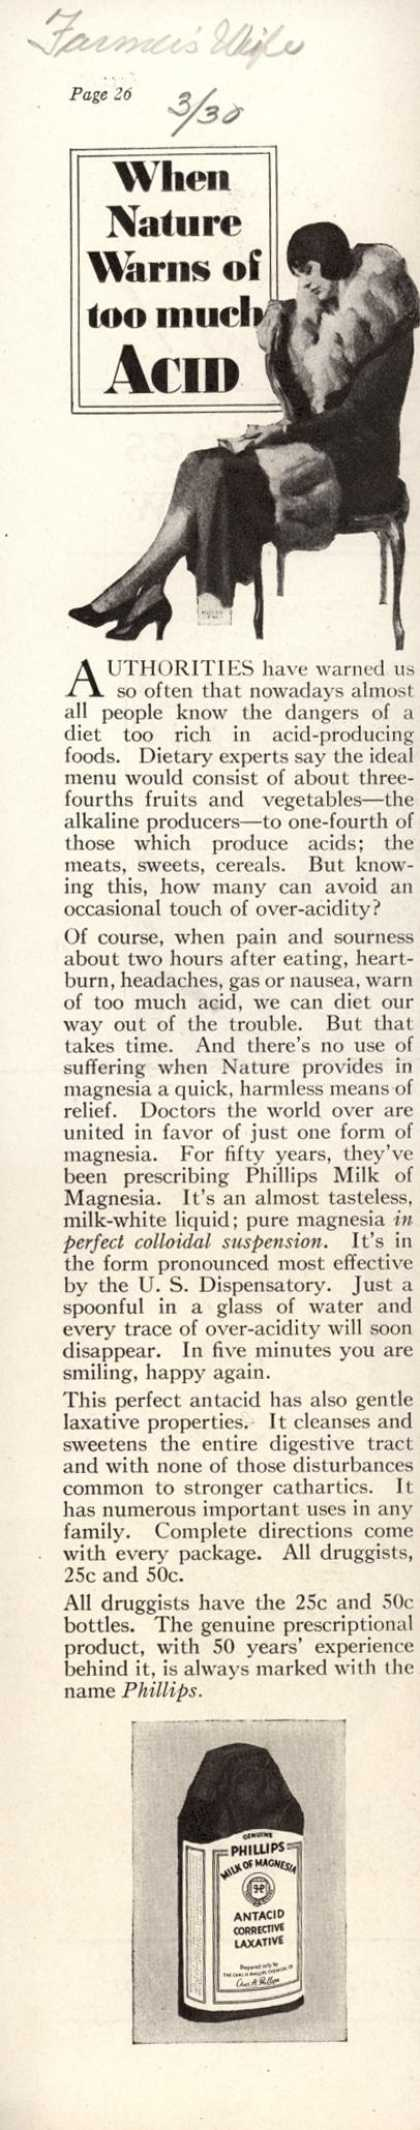 Chas. H. Phillips Chemical Co.'s Milk of Magnesia – When Nature Warns of too much Acid (1930)